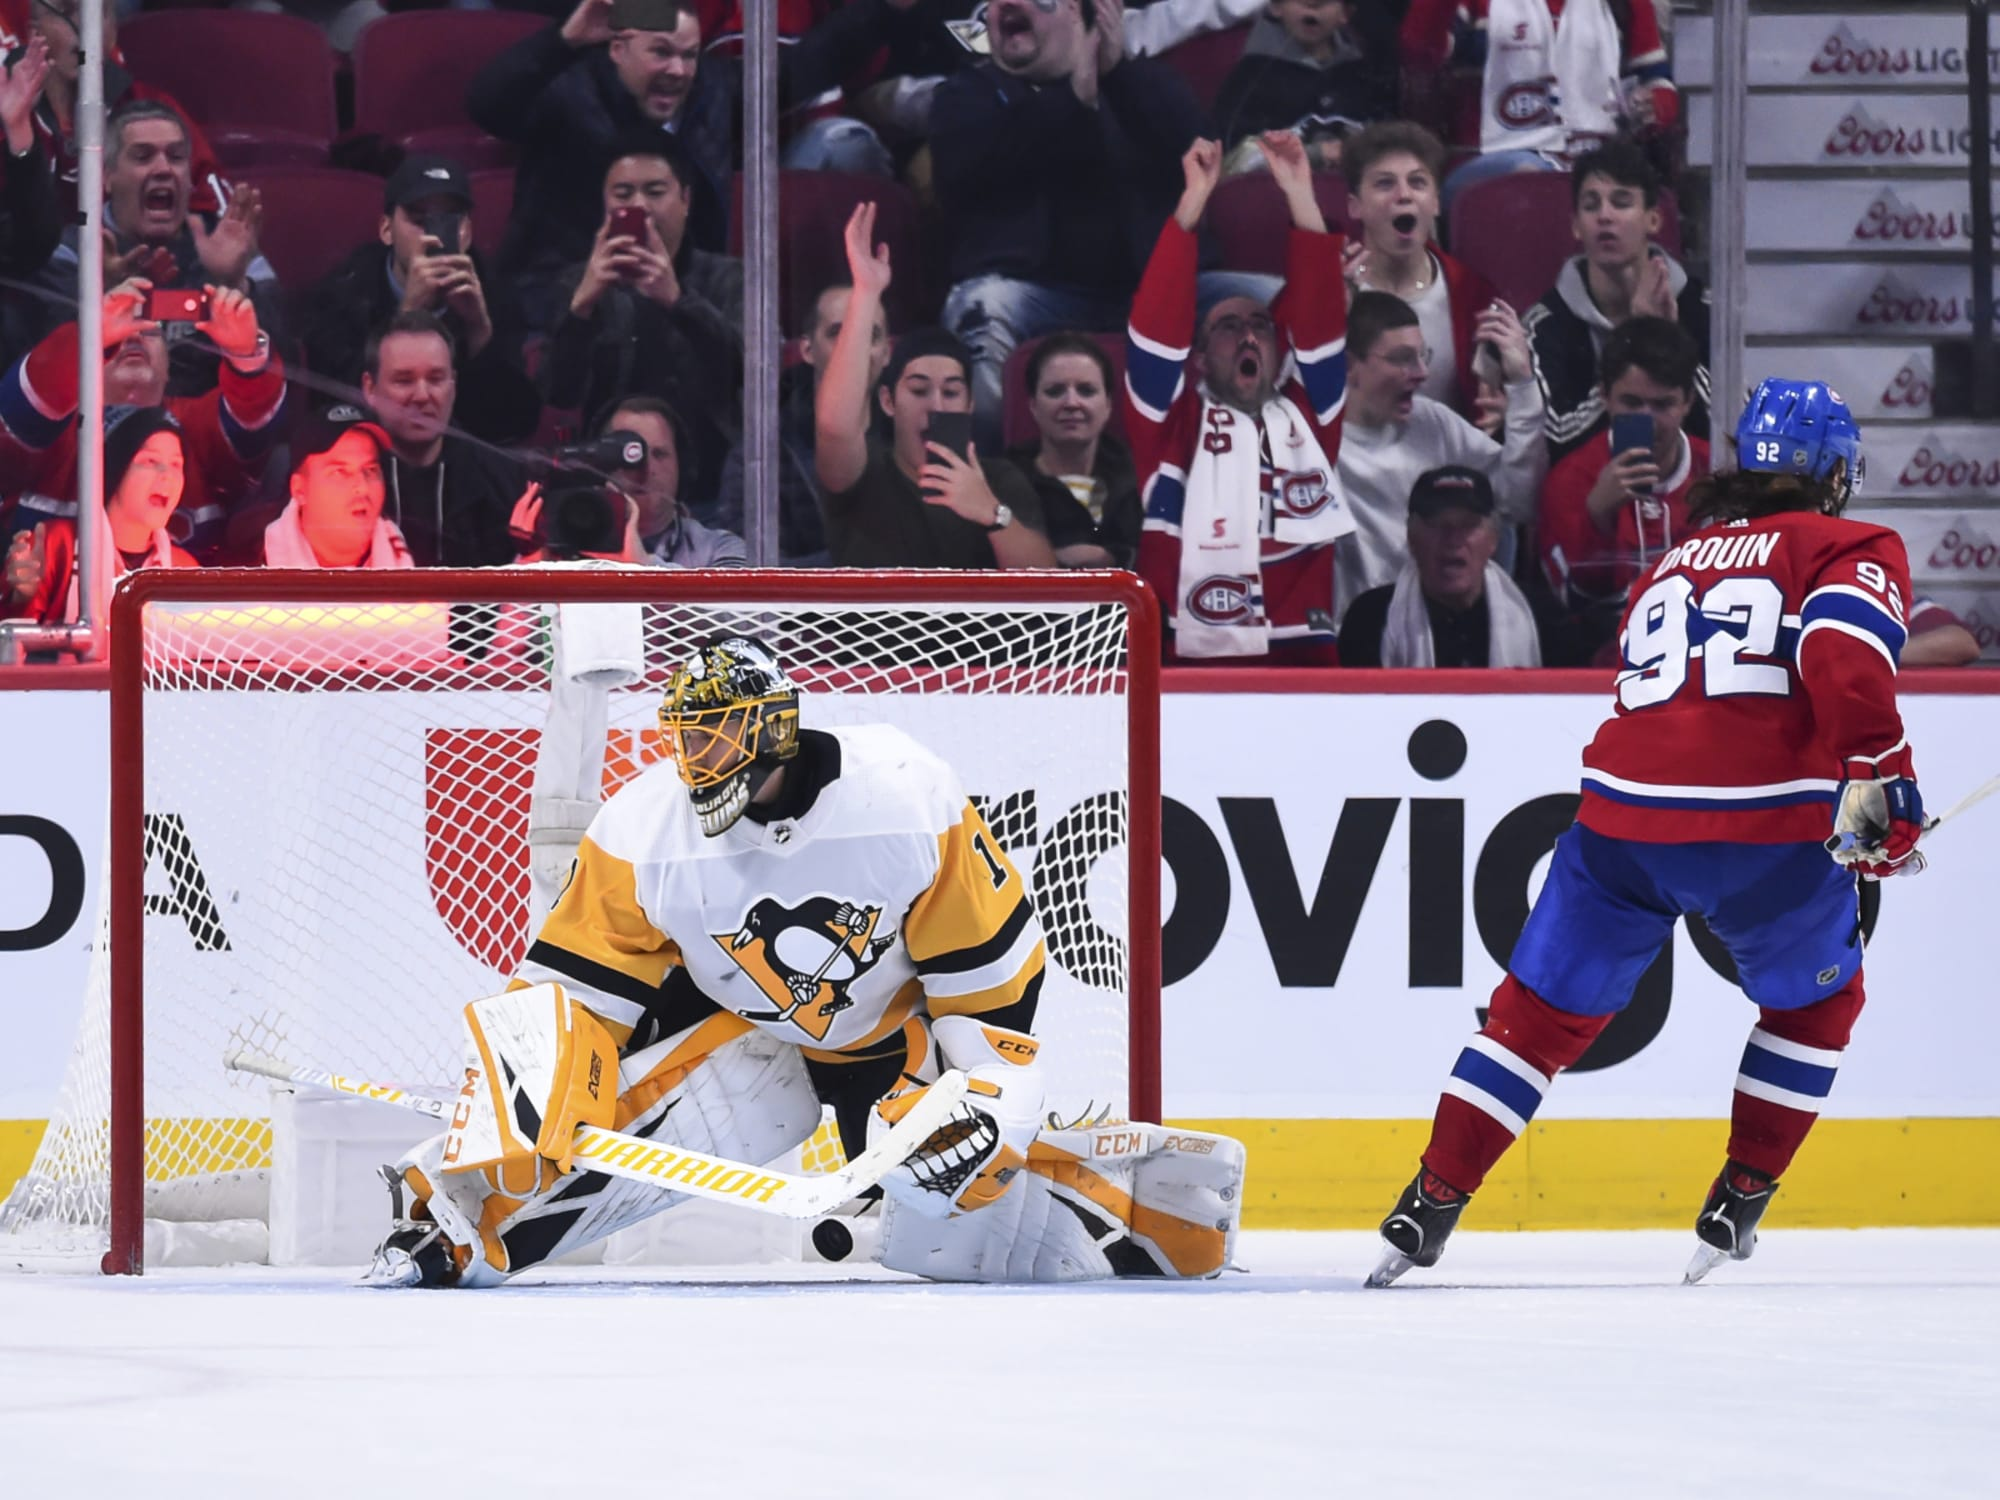 Stanley Cup Playoffs Canadiens Vs Penguins Game 1 Live Stream Info